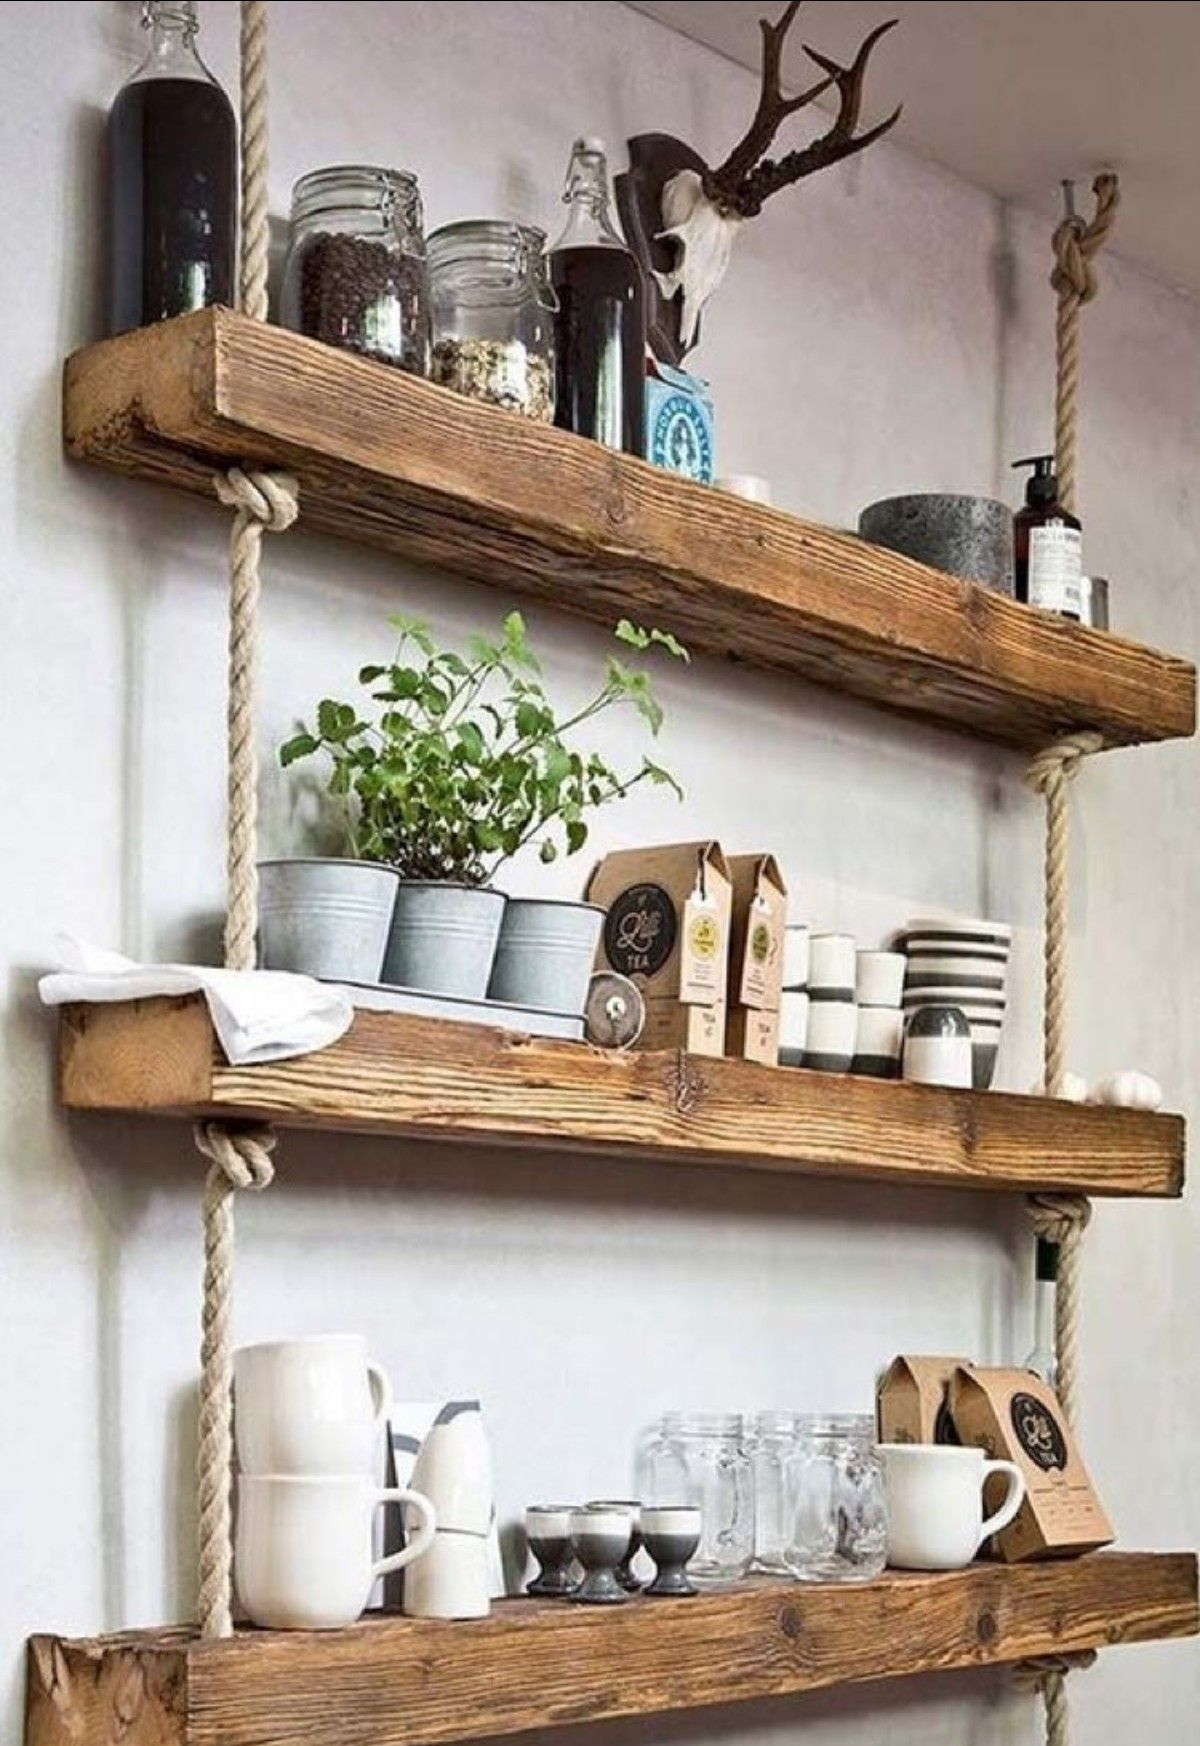 Would Build As Floating Shelves For